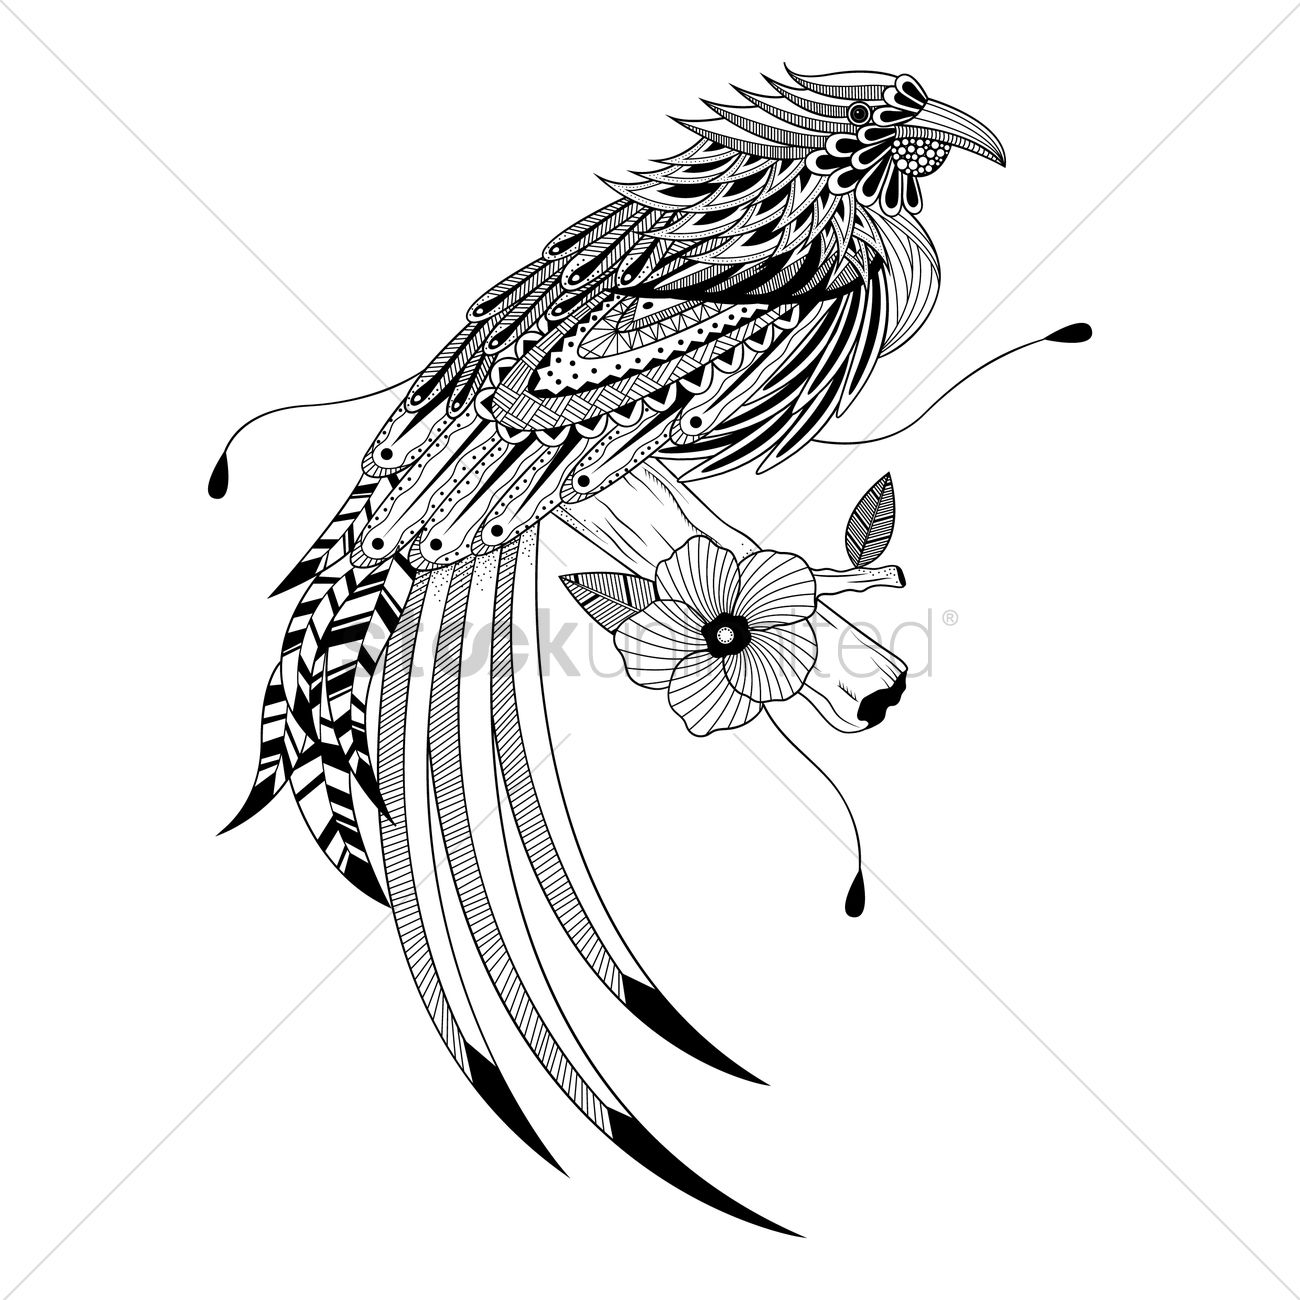 Quail Line Art : Intricate bird design vector image stockunlimited